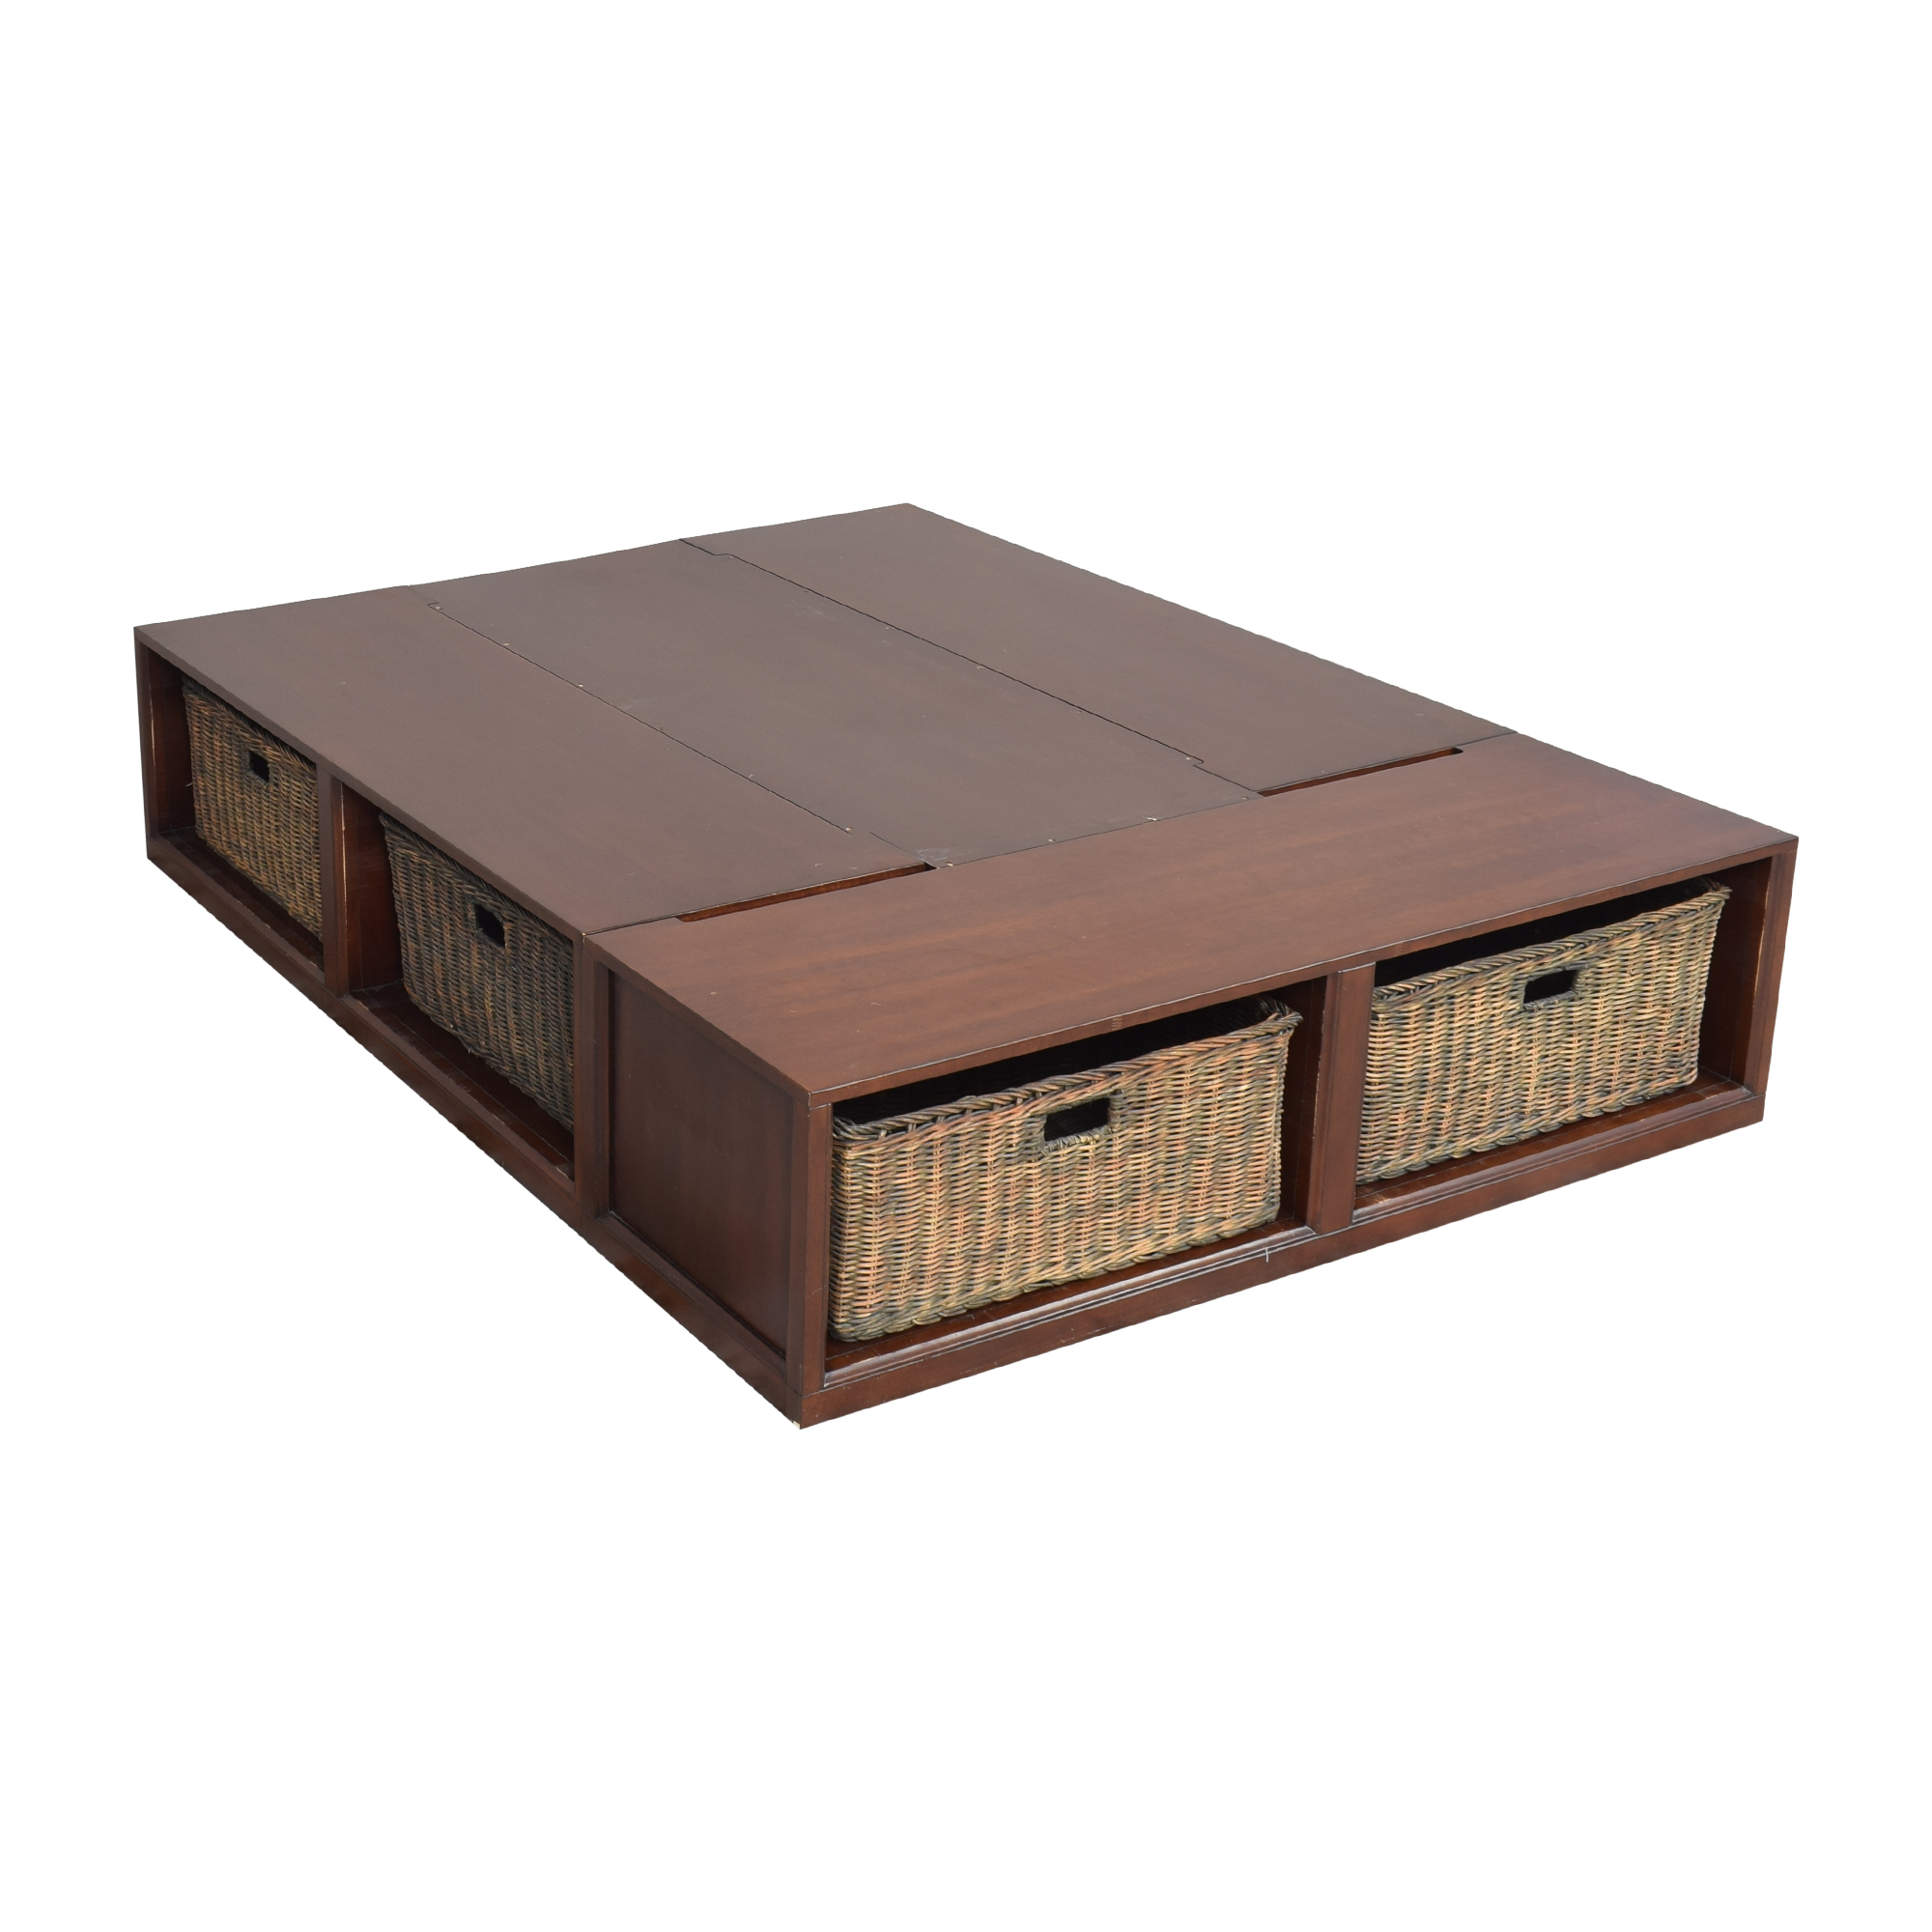 Pottery Barn Pottery Barn Stratton Storage Queen Platform Bed with Baskets dimensions